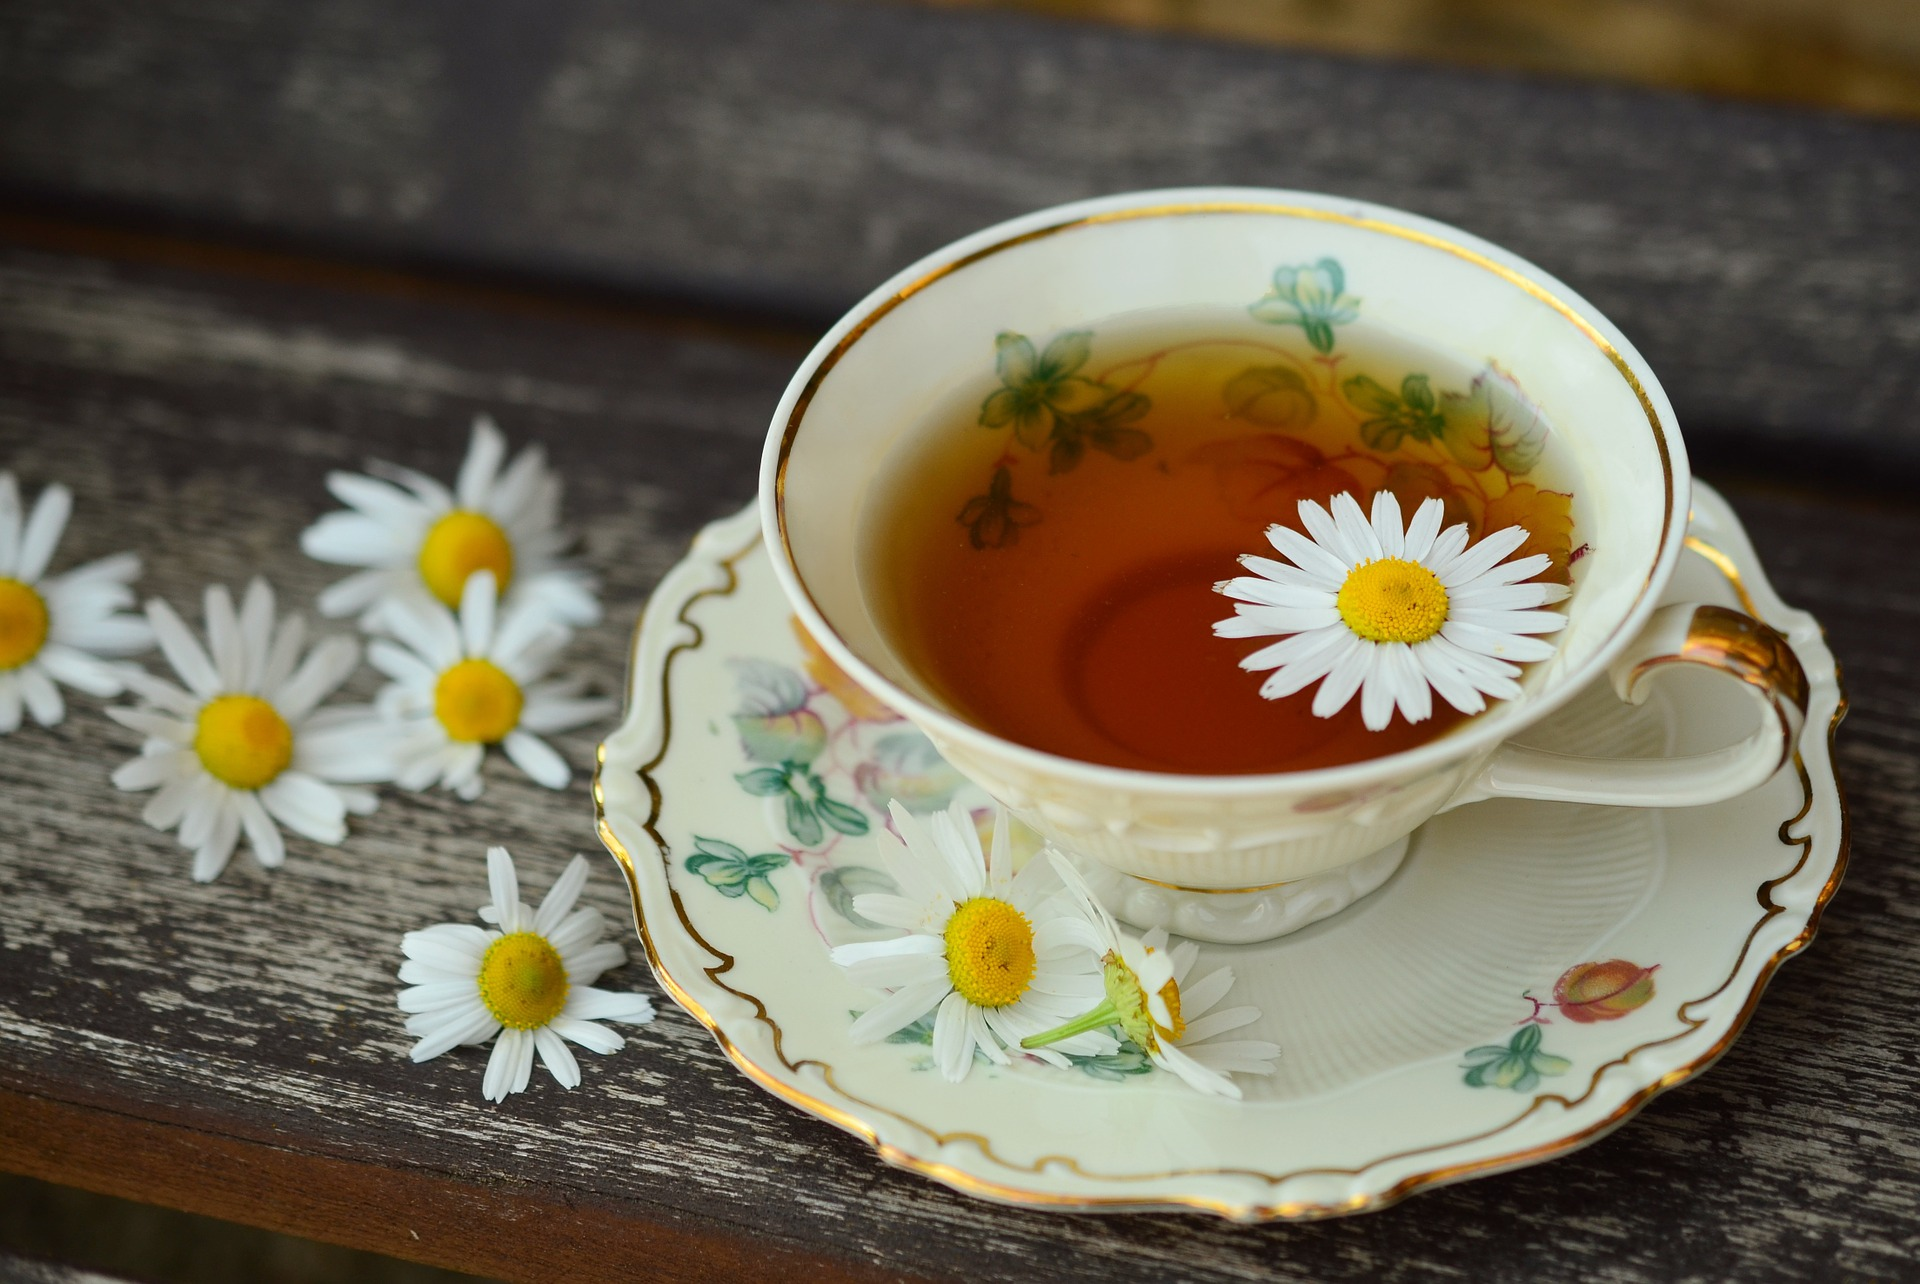 daisies and cup of tea on rustic table